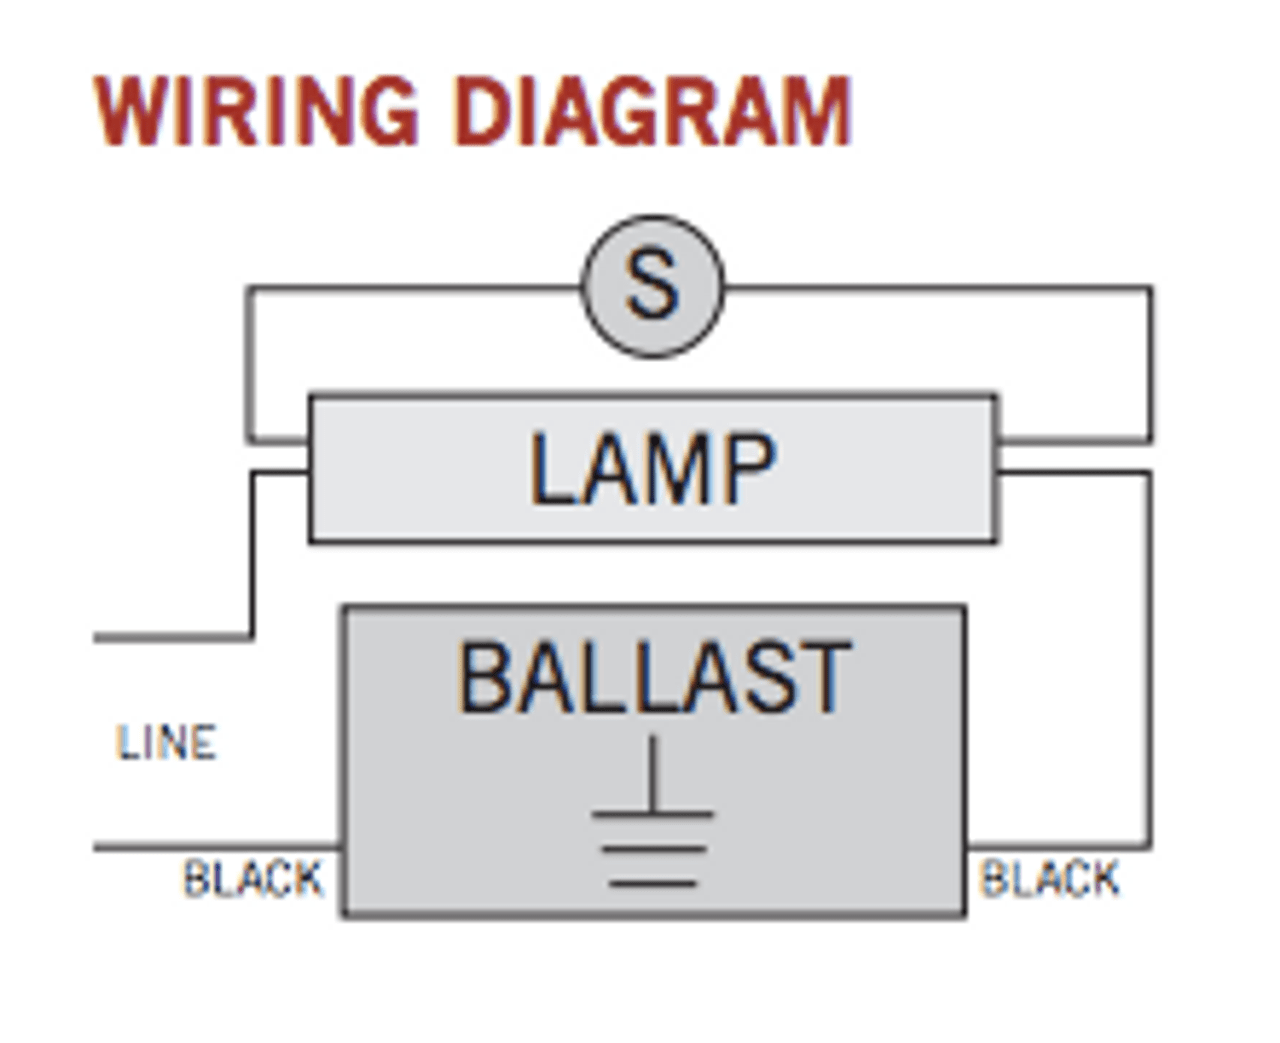 small resolution of cc1322mtp keystone cc1322mtp keystone wiring diagram